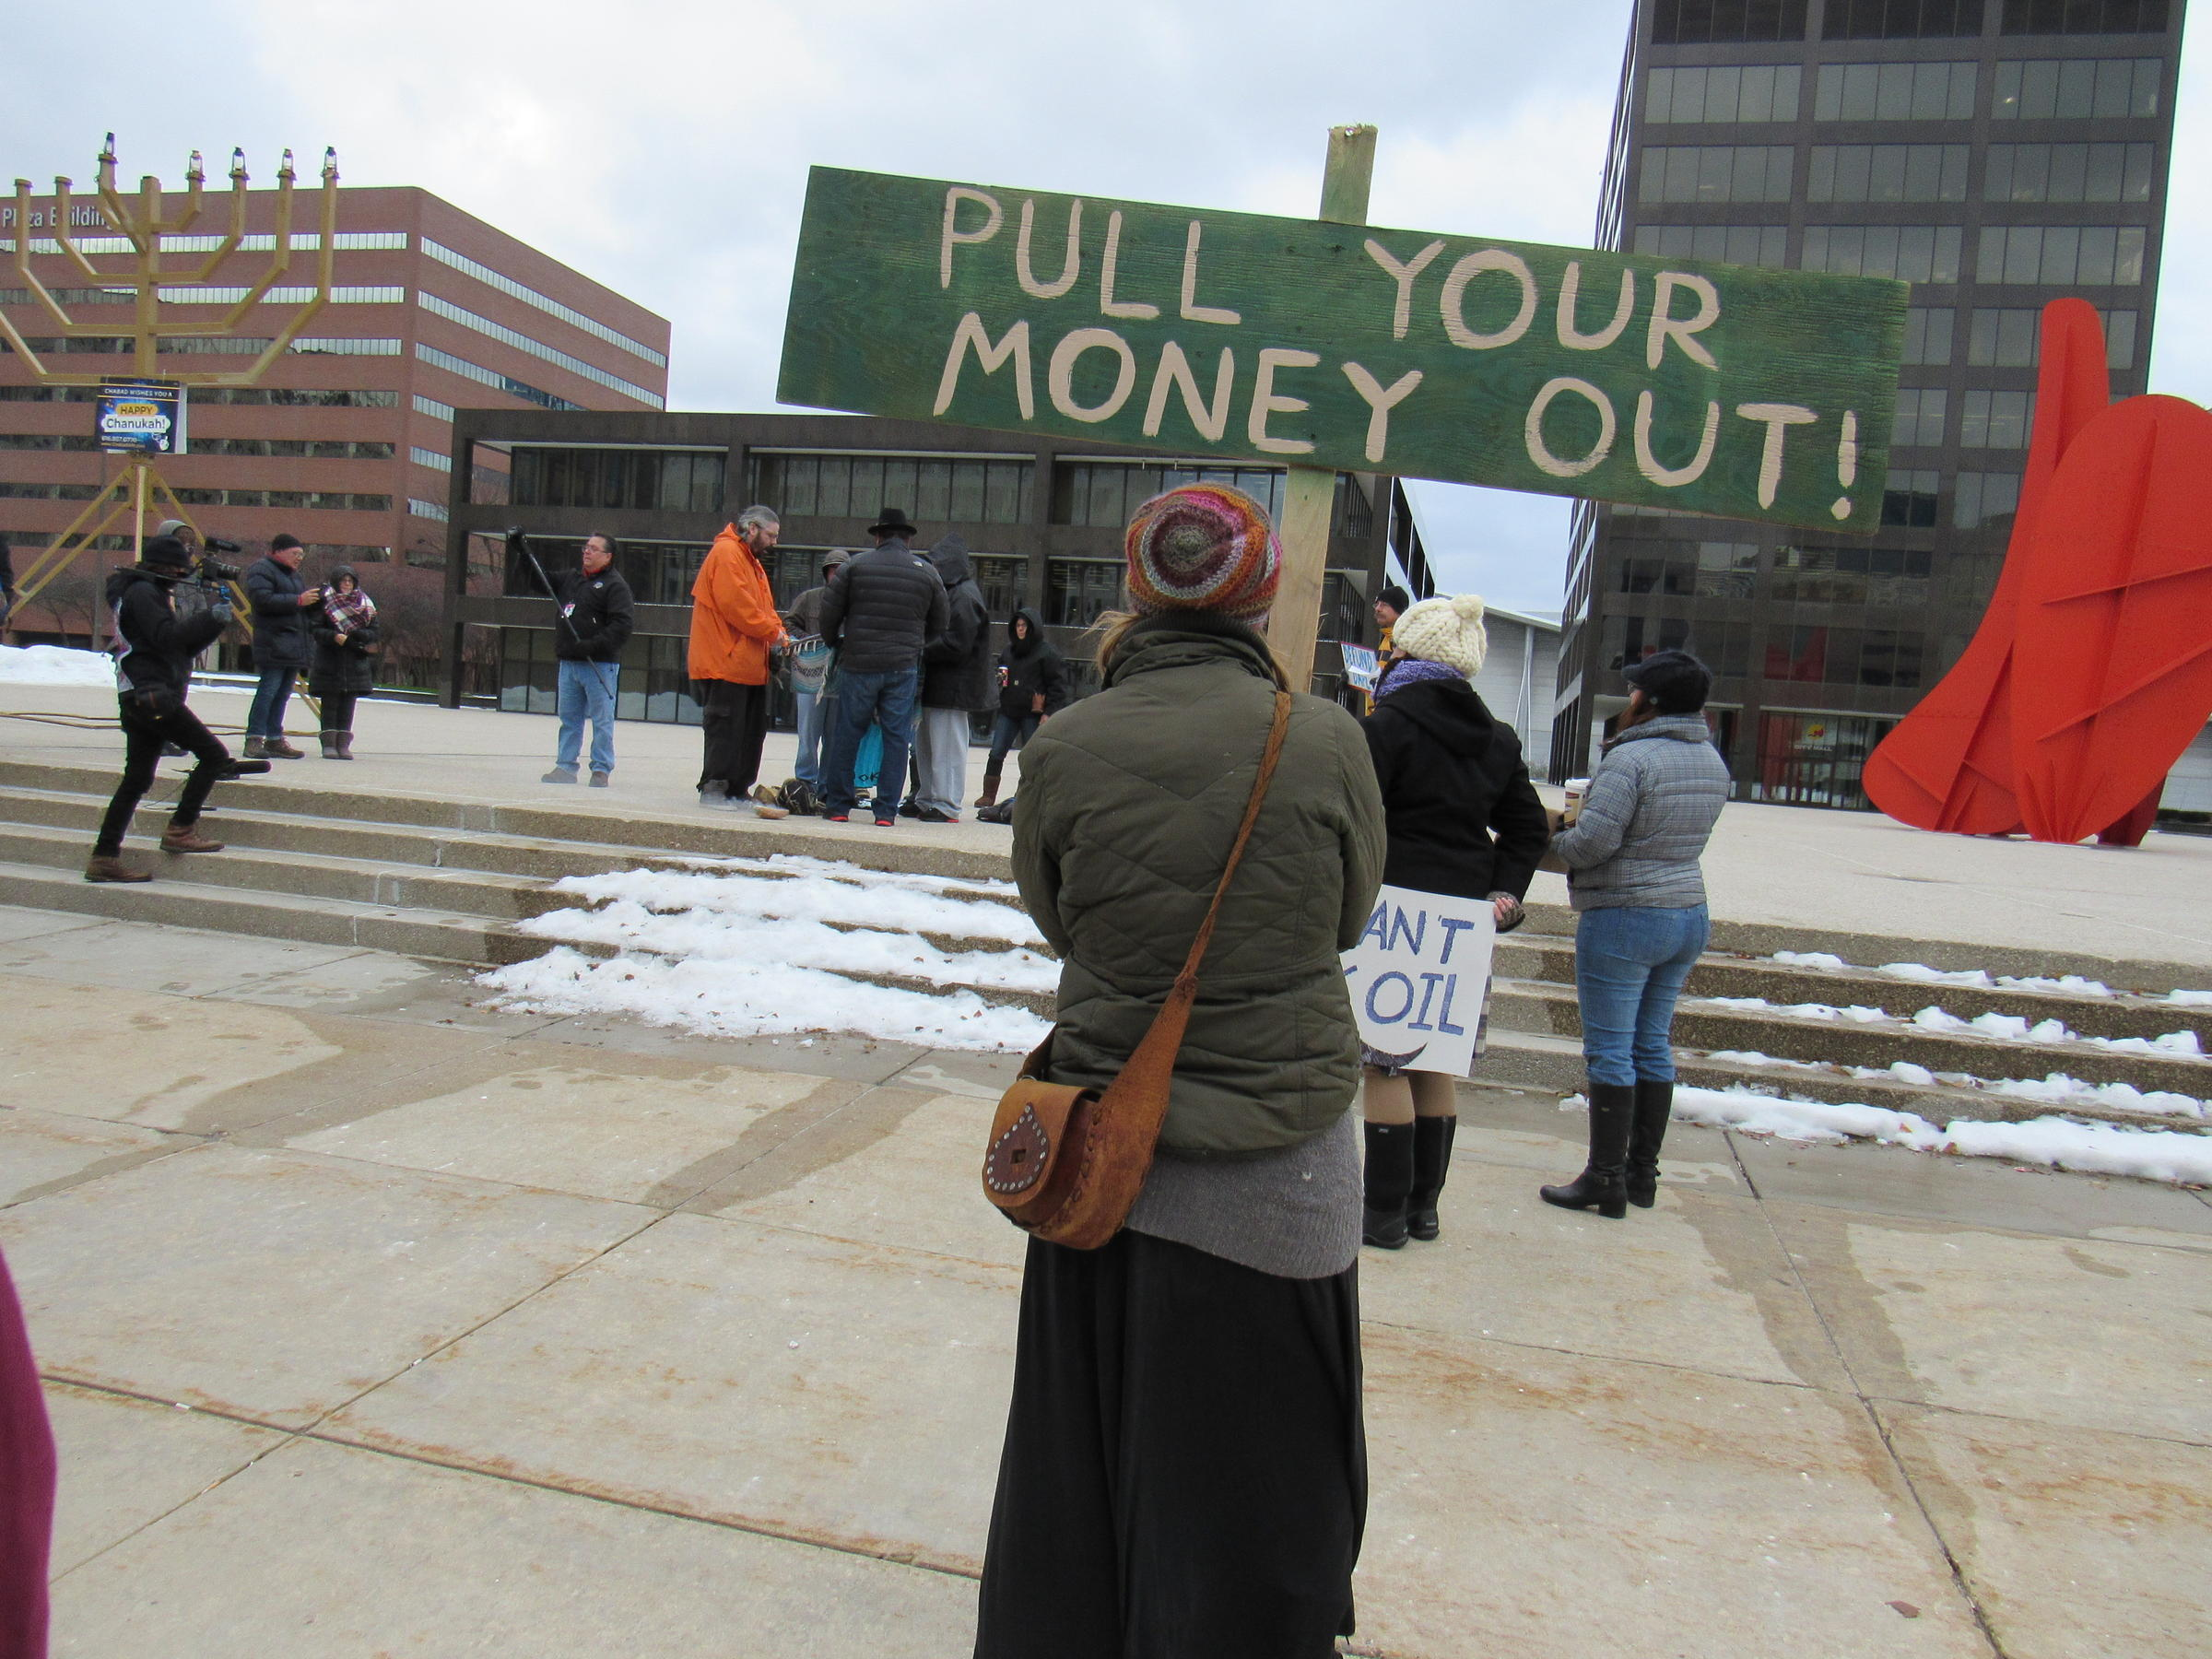 Protestors urge Chase bank customers in Grand Rapids to move money